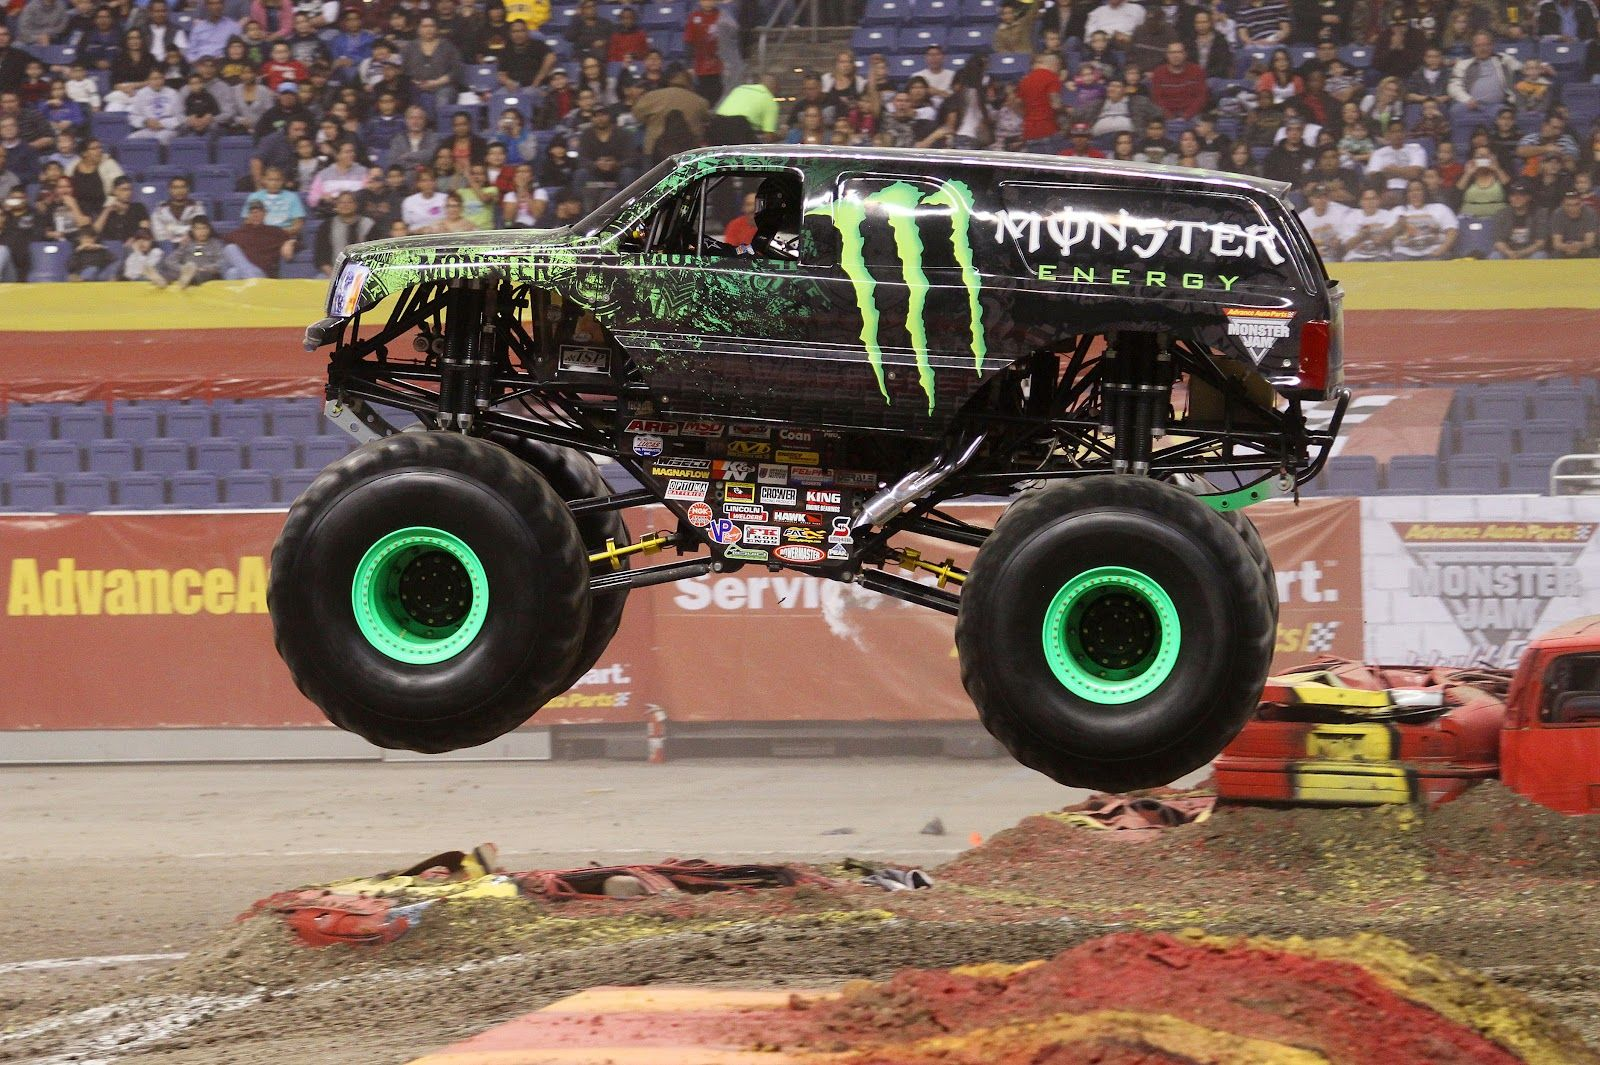 Monster Energy Monster Truck Monster Energy Pinterest